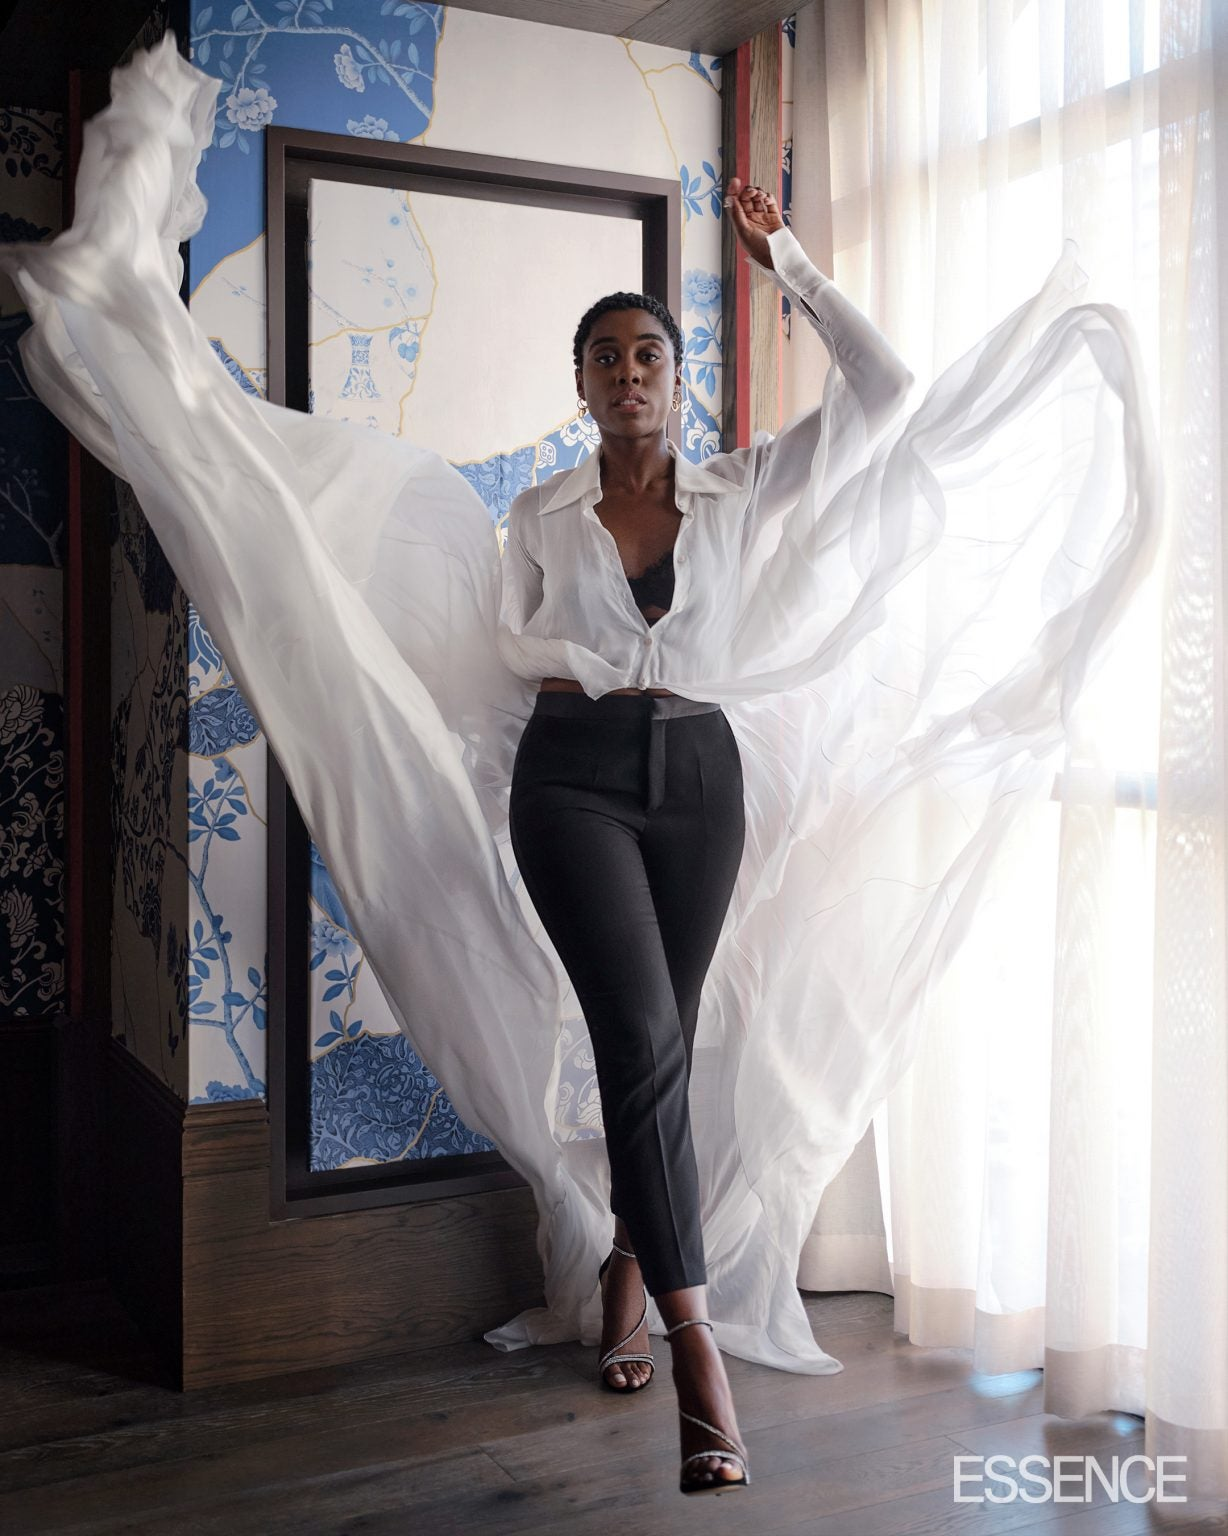 Lashana Lynch, The First Black Female 007 Is Ready To Be Seen In Her Latest Essence Feature